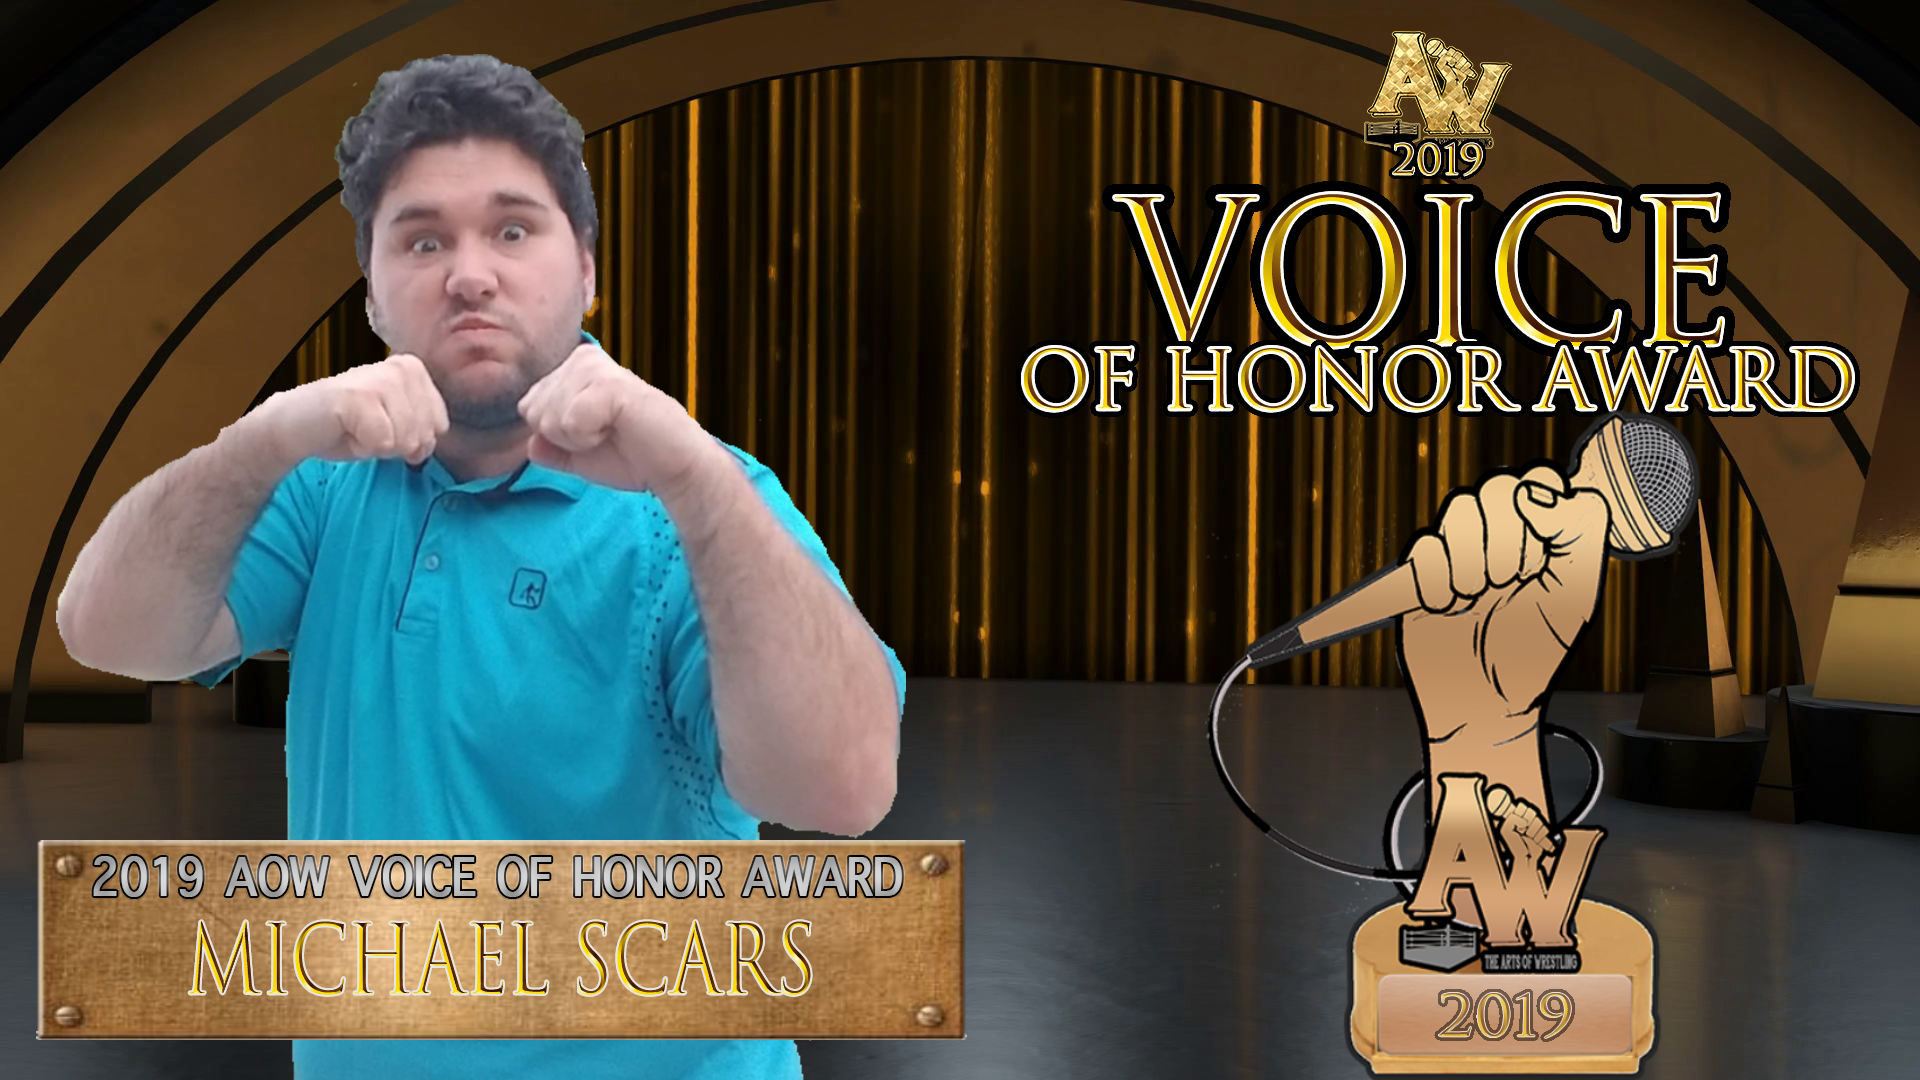 VOice Of Honor Award.png